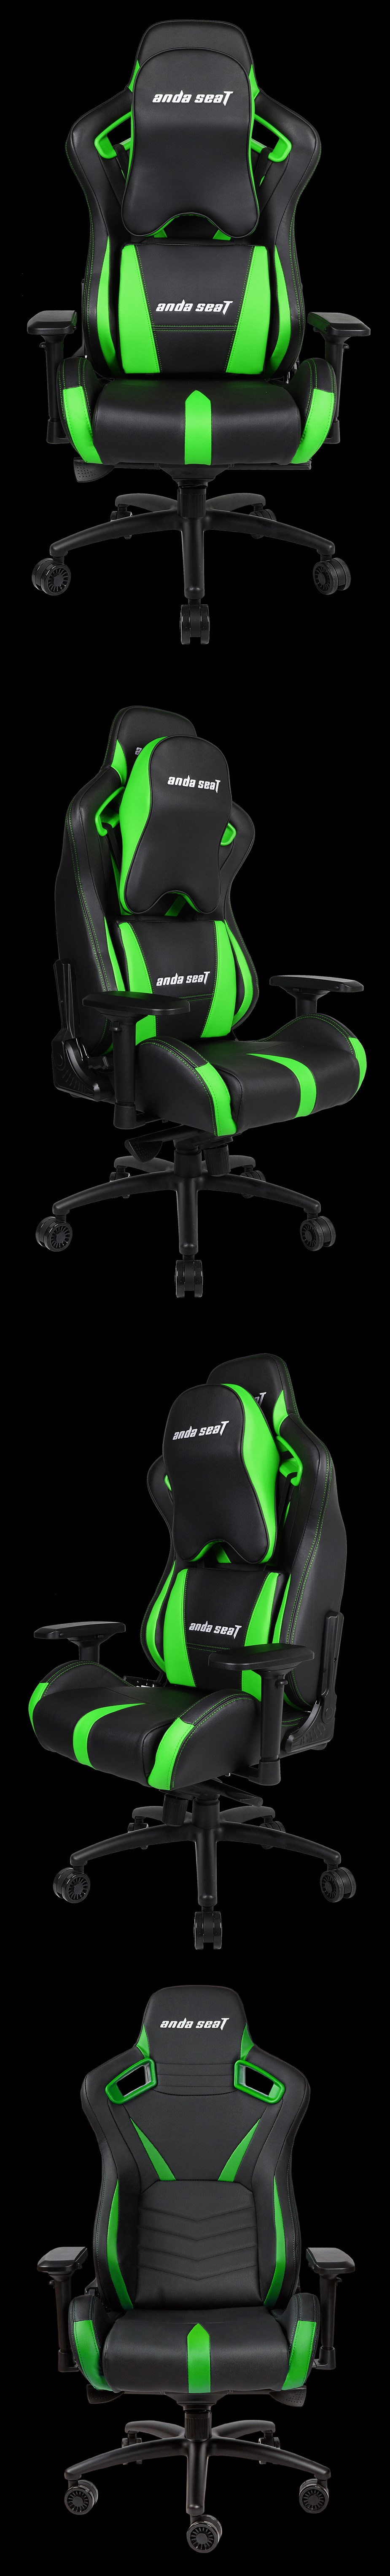 Anda Seat AD12-XL-03 v2 Gaming Chair - Black/Green - Desktop Overview 2